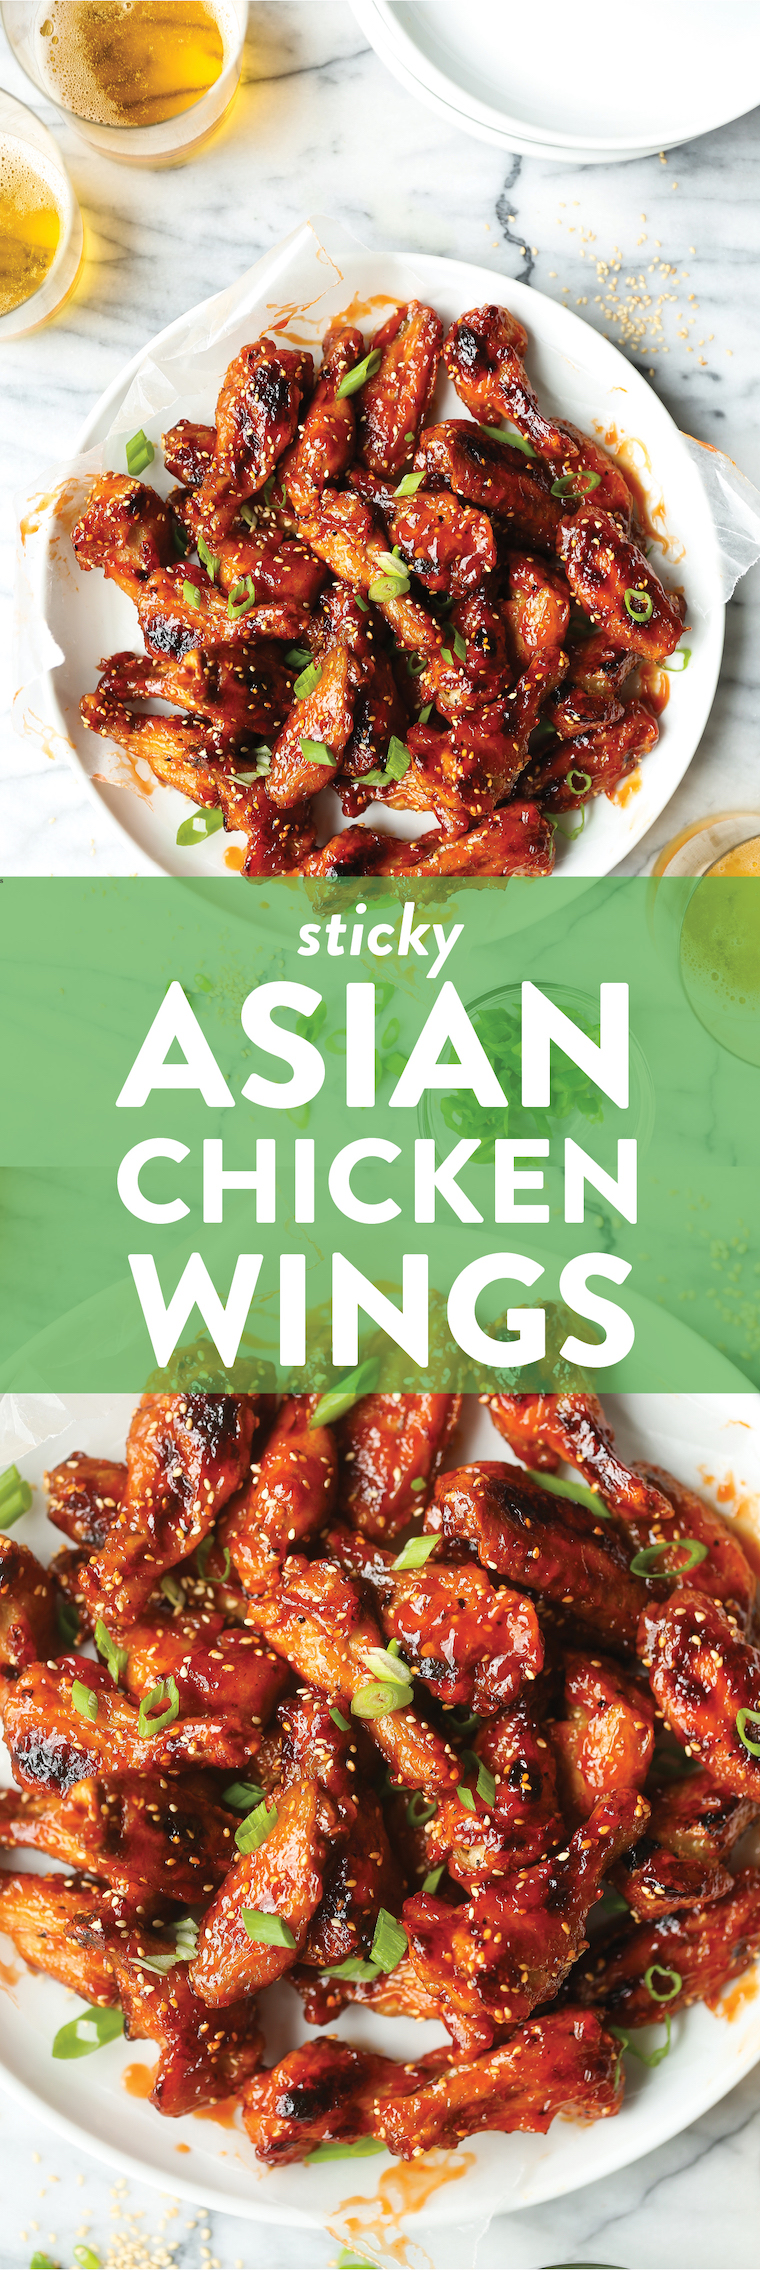 Sticky Asian Chicken Wings - Crispy, sticky, sweet, savory with the most perfect caramelized glaze. Basically best party food ever. SO FINGER-LICKING GOOD.